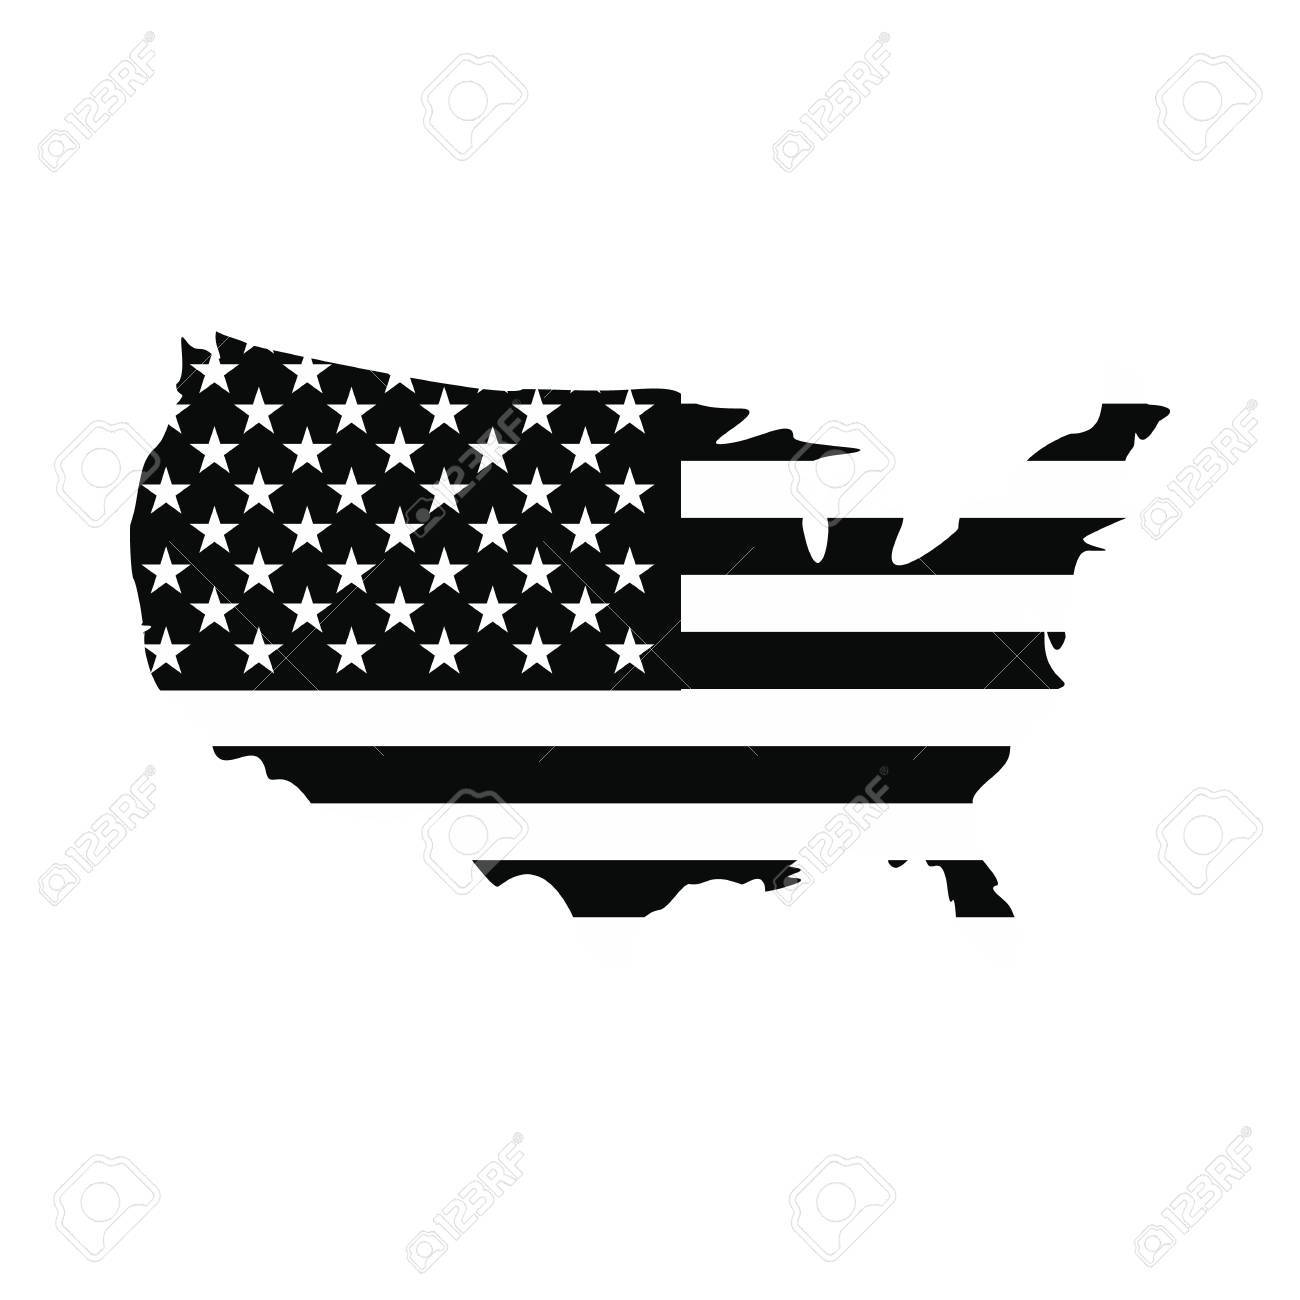 USA map flag icon. Black simple style Usa Map Logo Black on usa welcome logo, usa parking logo, google maps logo, united states logo, usa art logo, usa restaurant logo, usa car logo, usa login logo, us states logo, usa letter logo, usa outline logo, usa union logo, education usa logo, north america logo, usa baseball logo, usa travel logo, usa school logo, usa hockey logo, product of usa logo, usa hat logo,